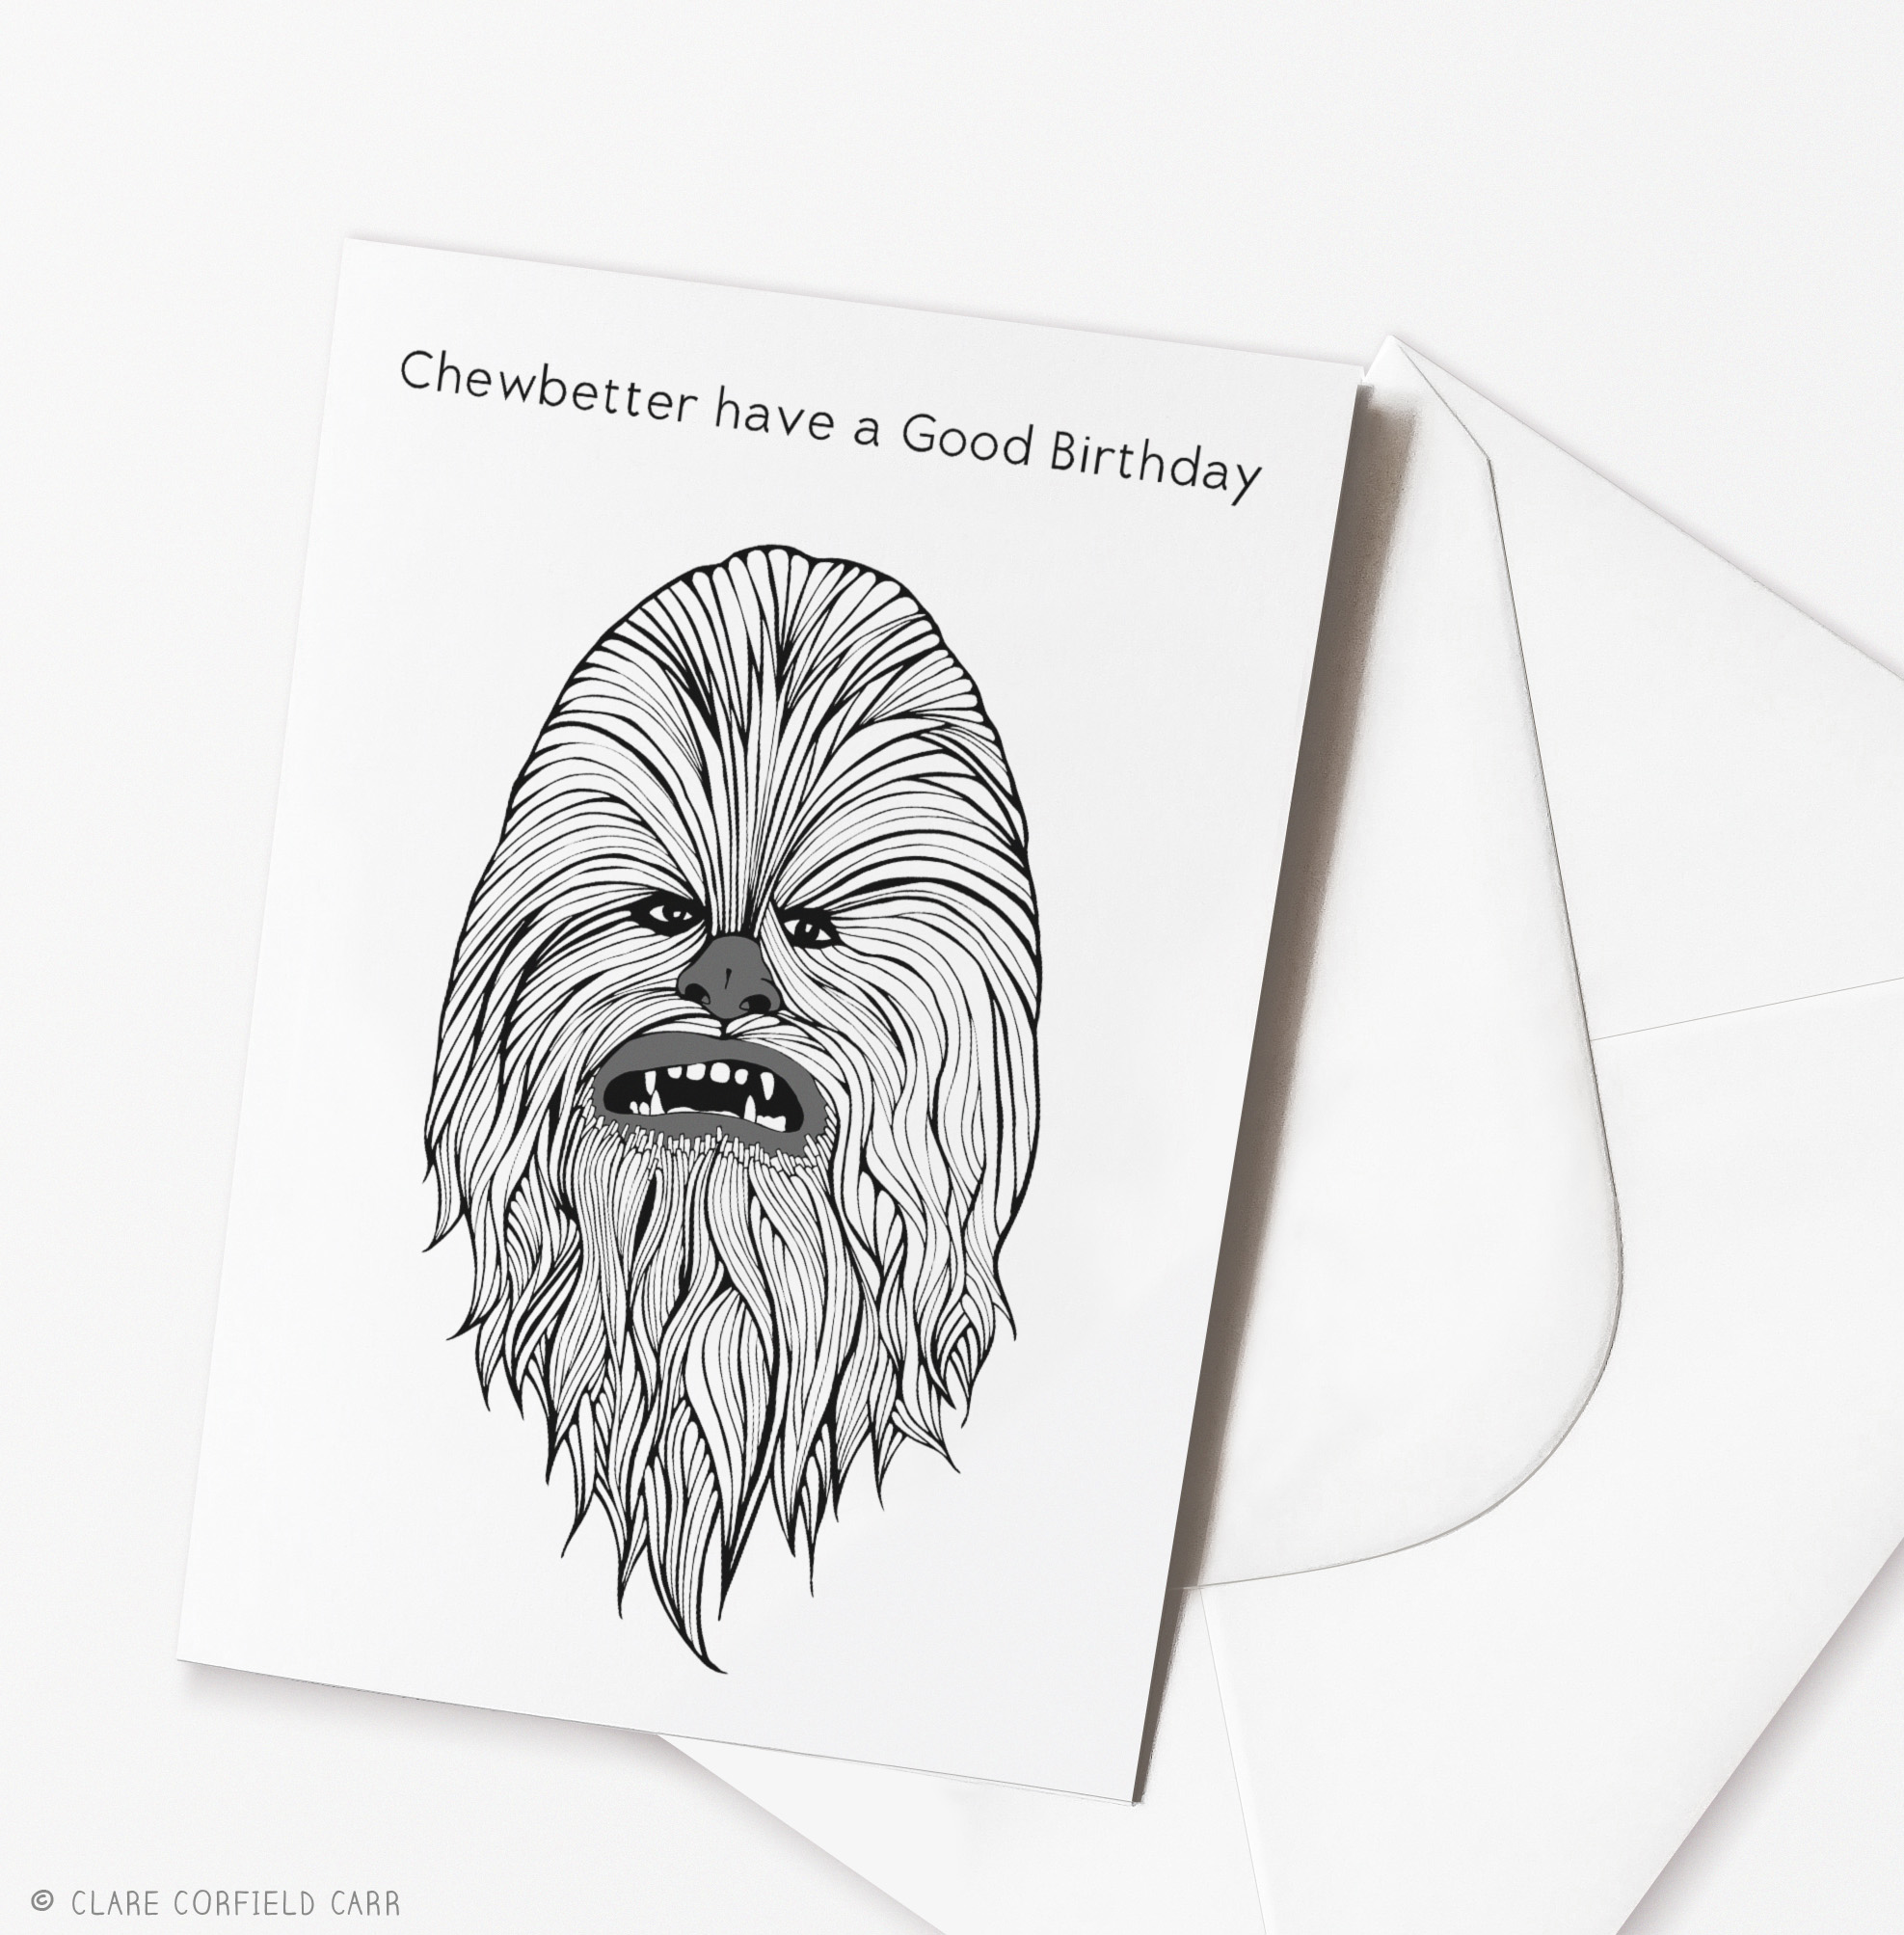 Birthday cards clare corfield carr funny star wars birthday card chewbacca illustration drawing bookmarktalkfo Choice Image